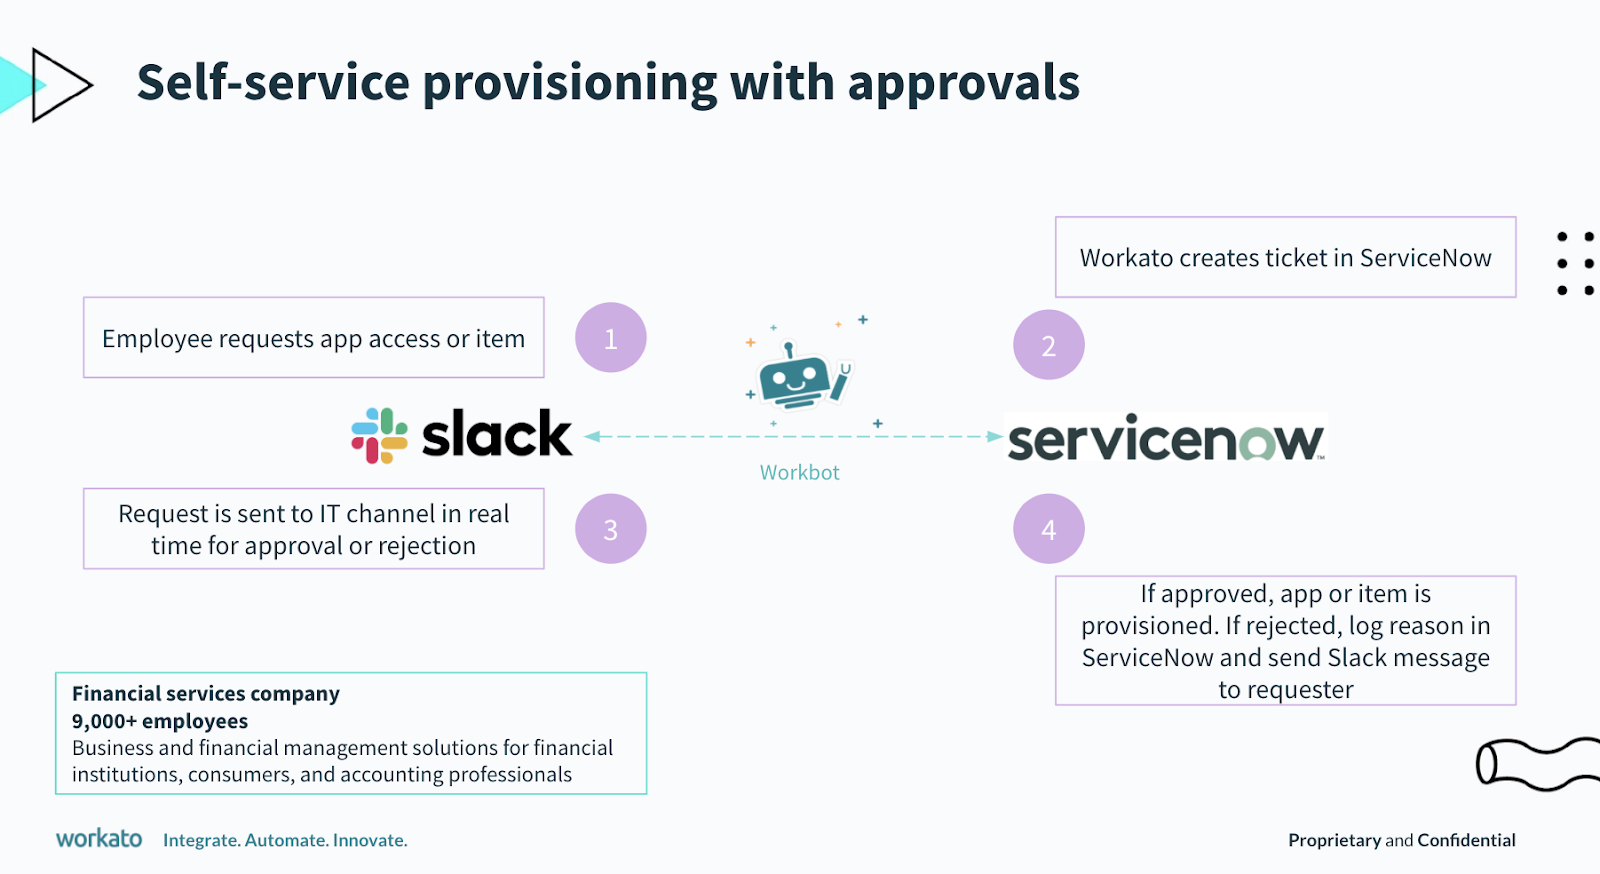 The workflow for provisioning access to applications